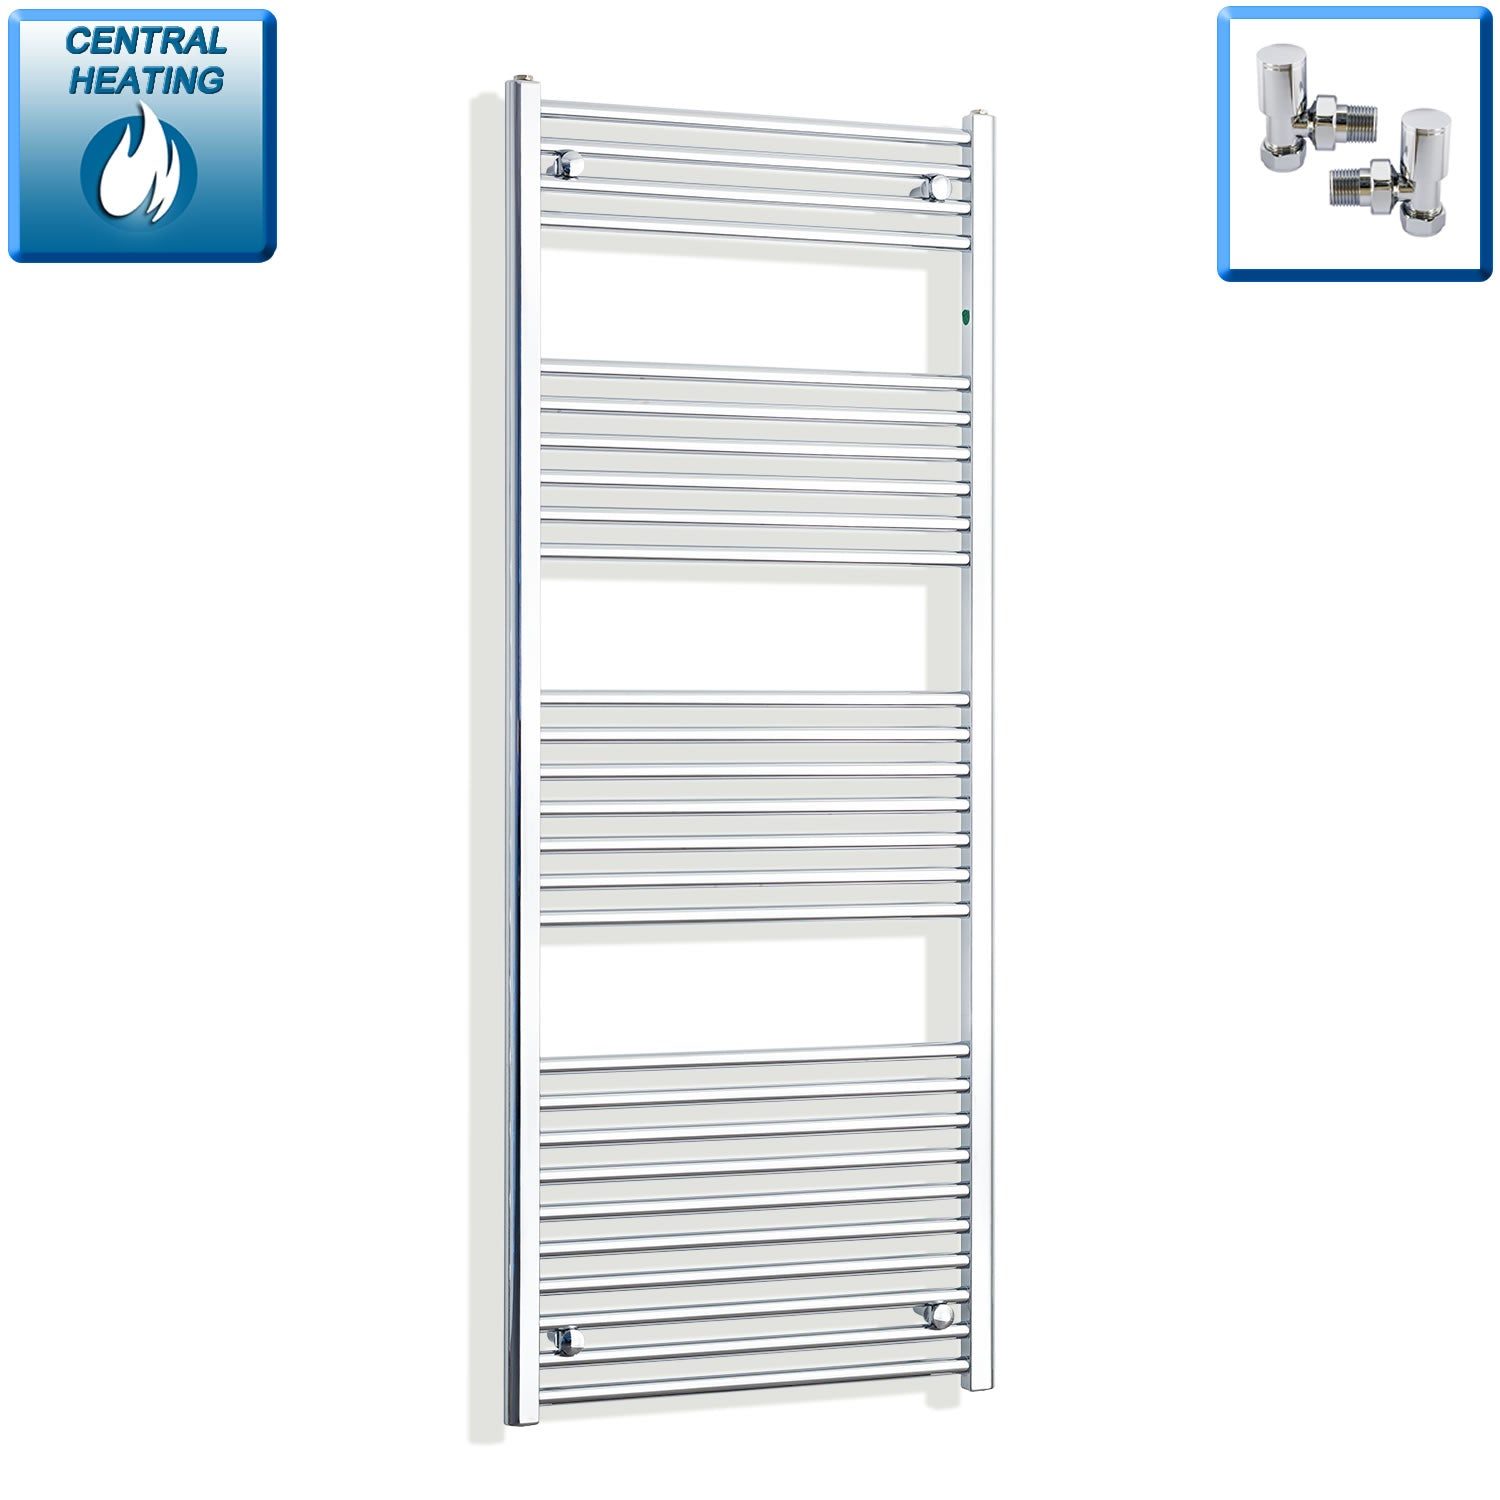 500mm Wide 1600mm High Chrome Towel Rail Radiator With Angled Valve